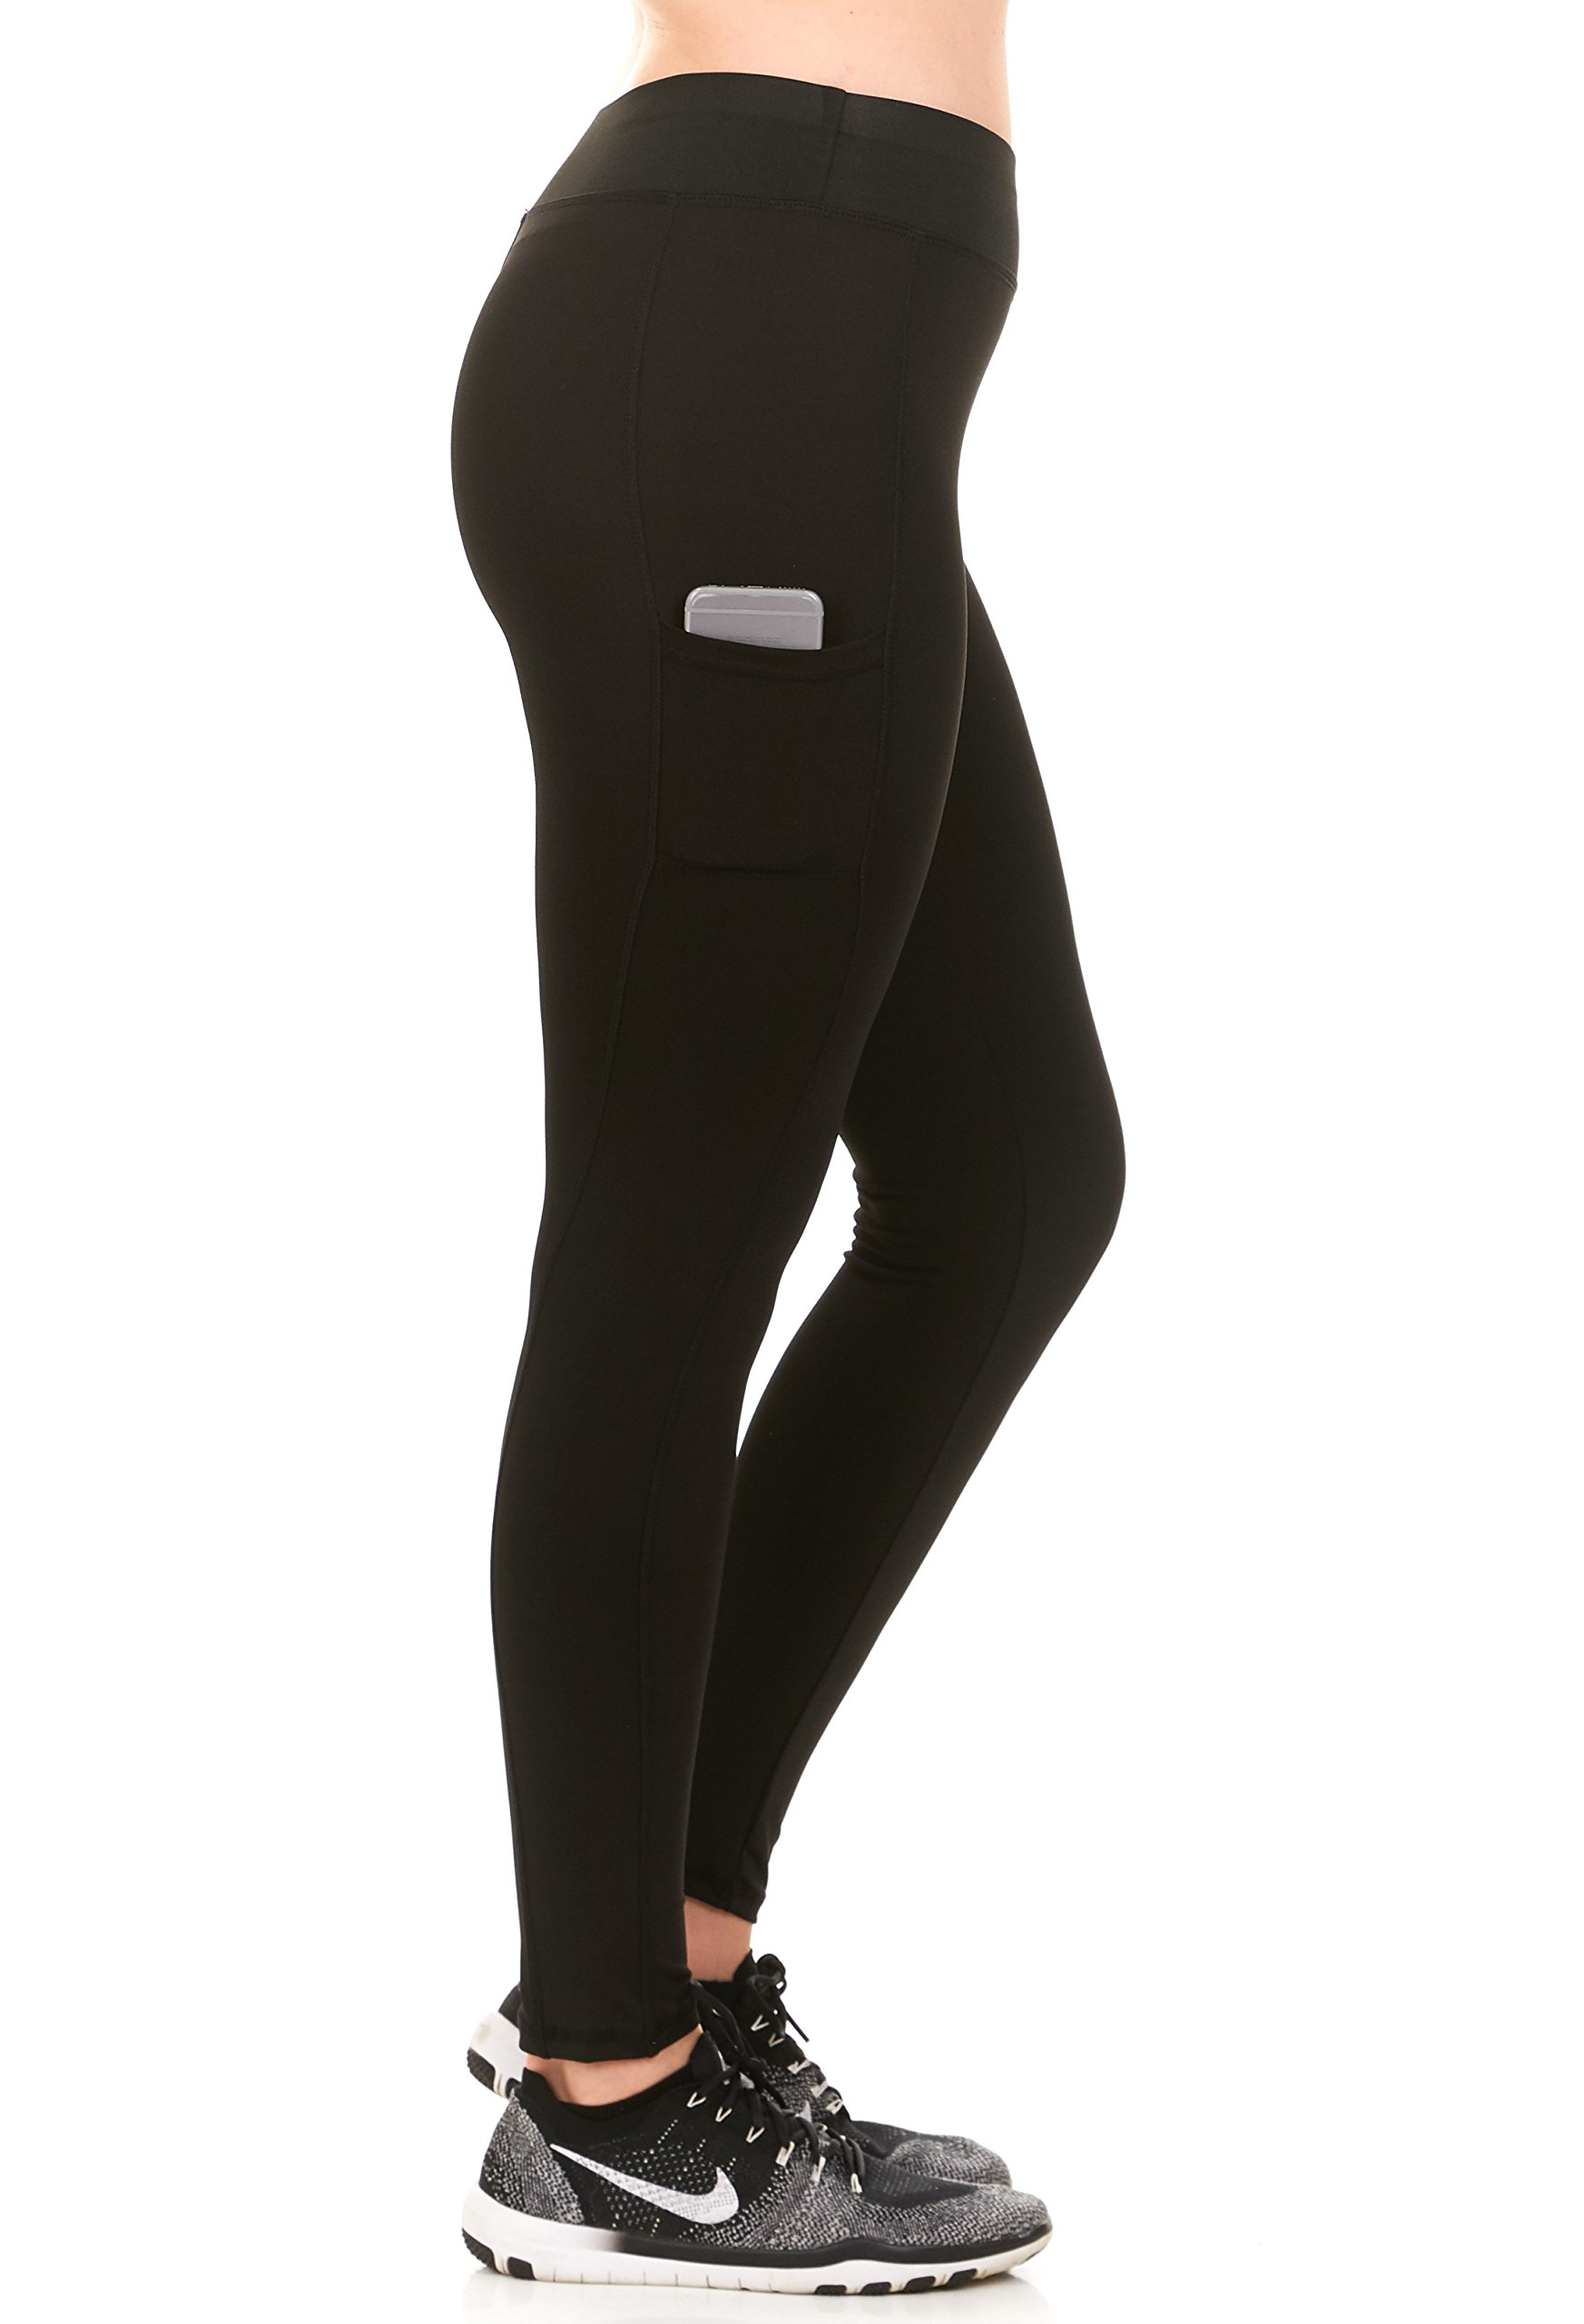 Unique Styles Womens Fitness Leggings High Waistband with Side Pocket